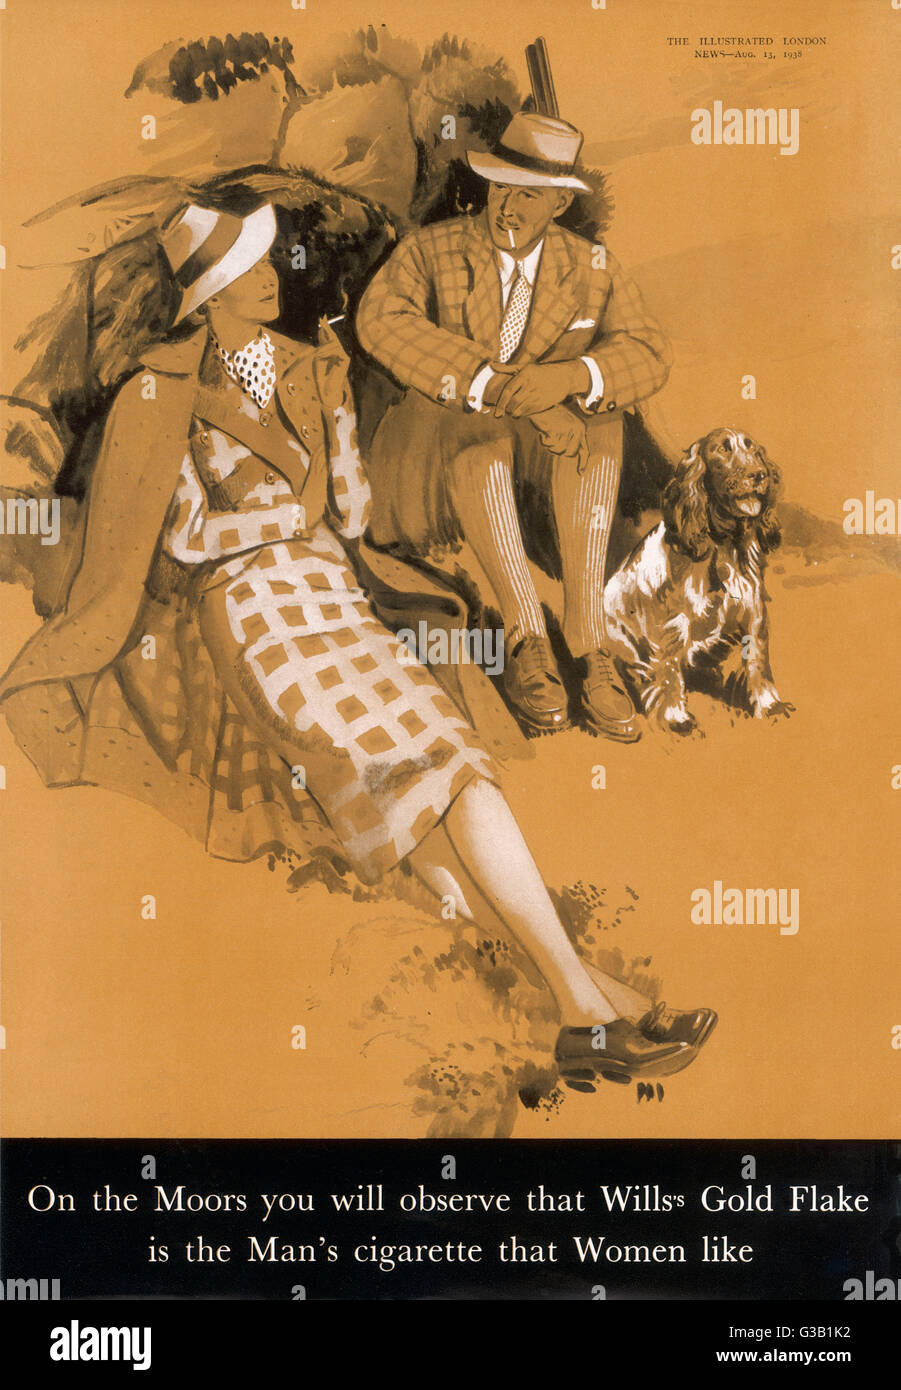 Wills's Gold Flake on the  Moors -  the Man's cigarette that Women like      Date: 1938 - Stock Image